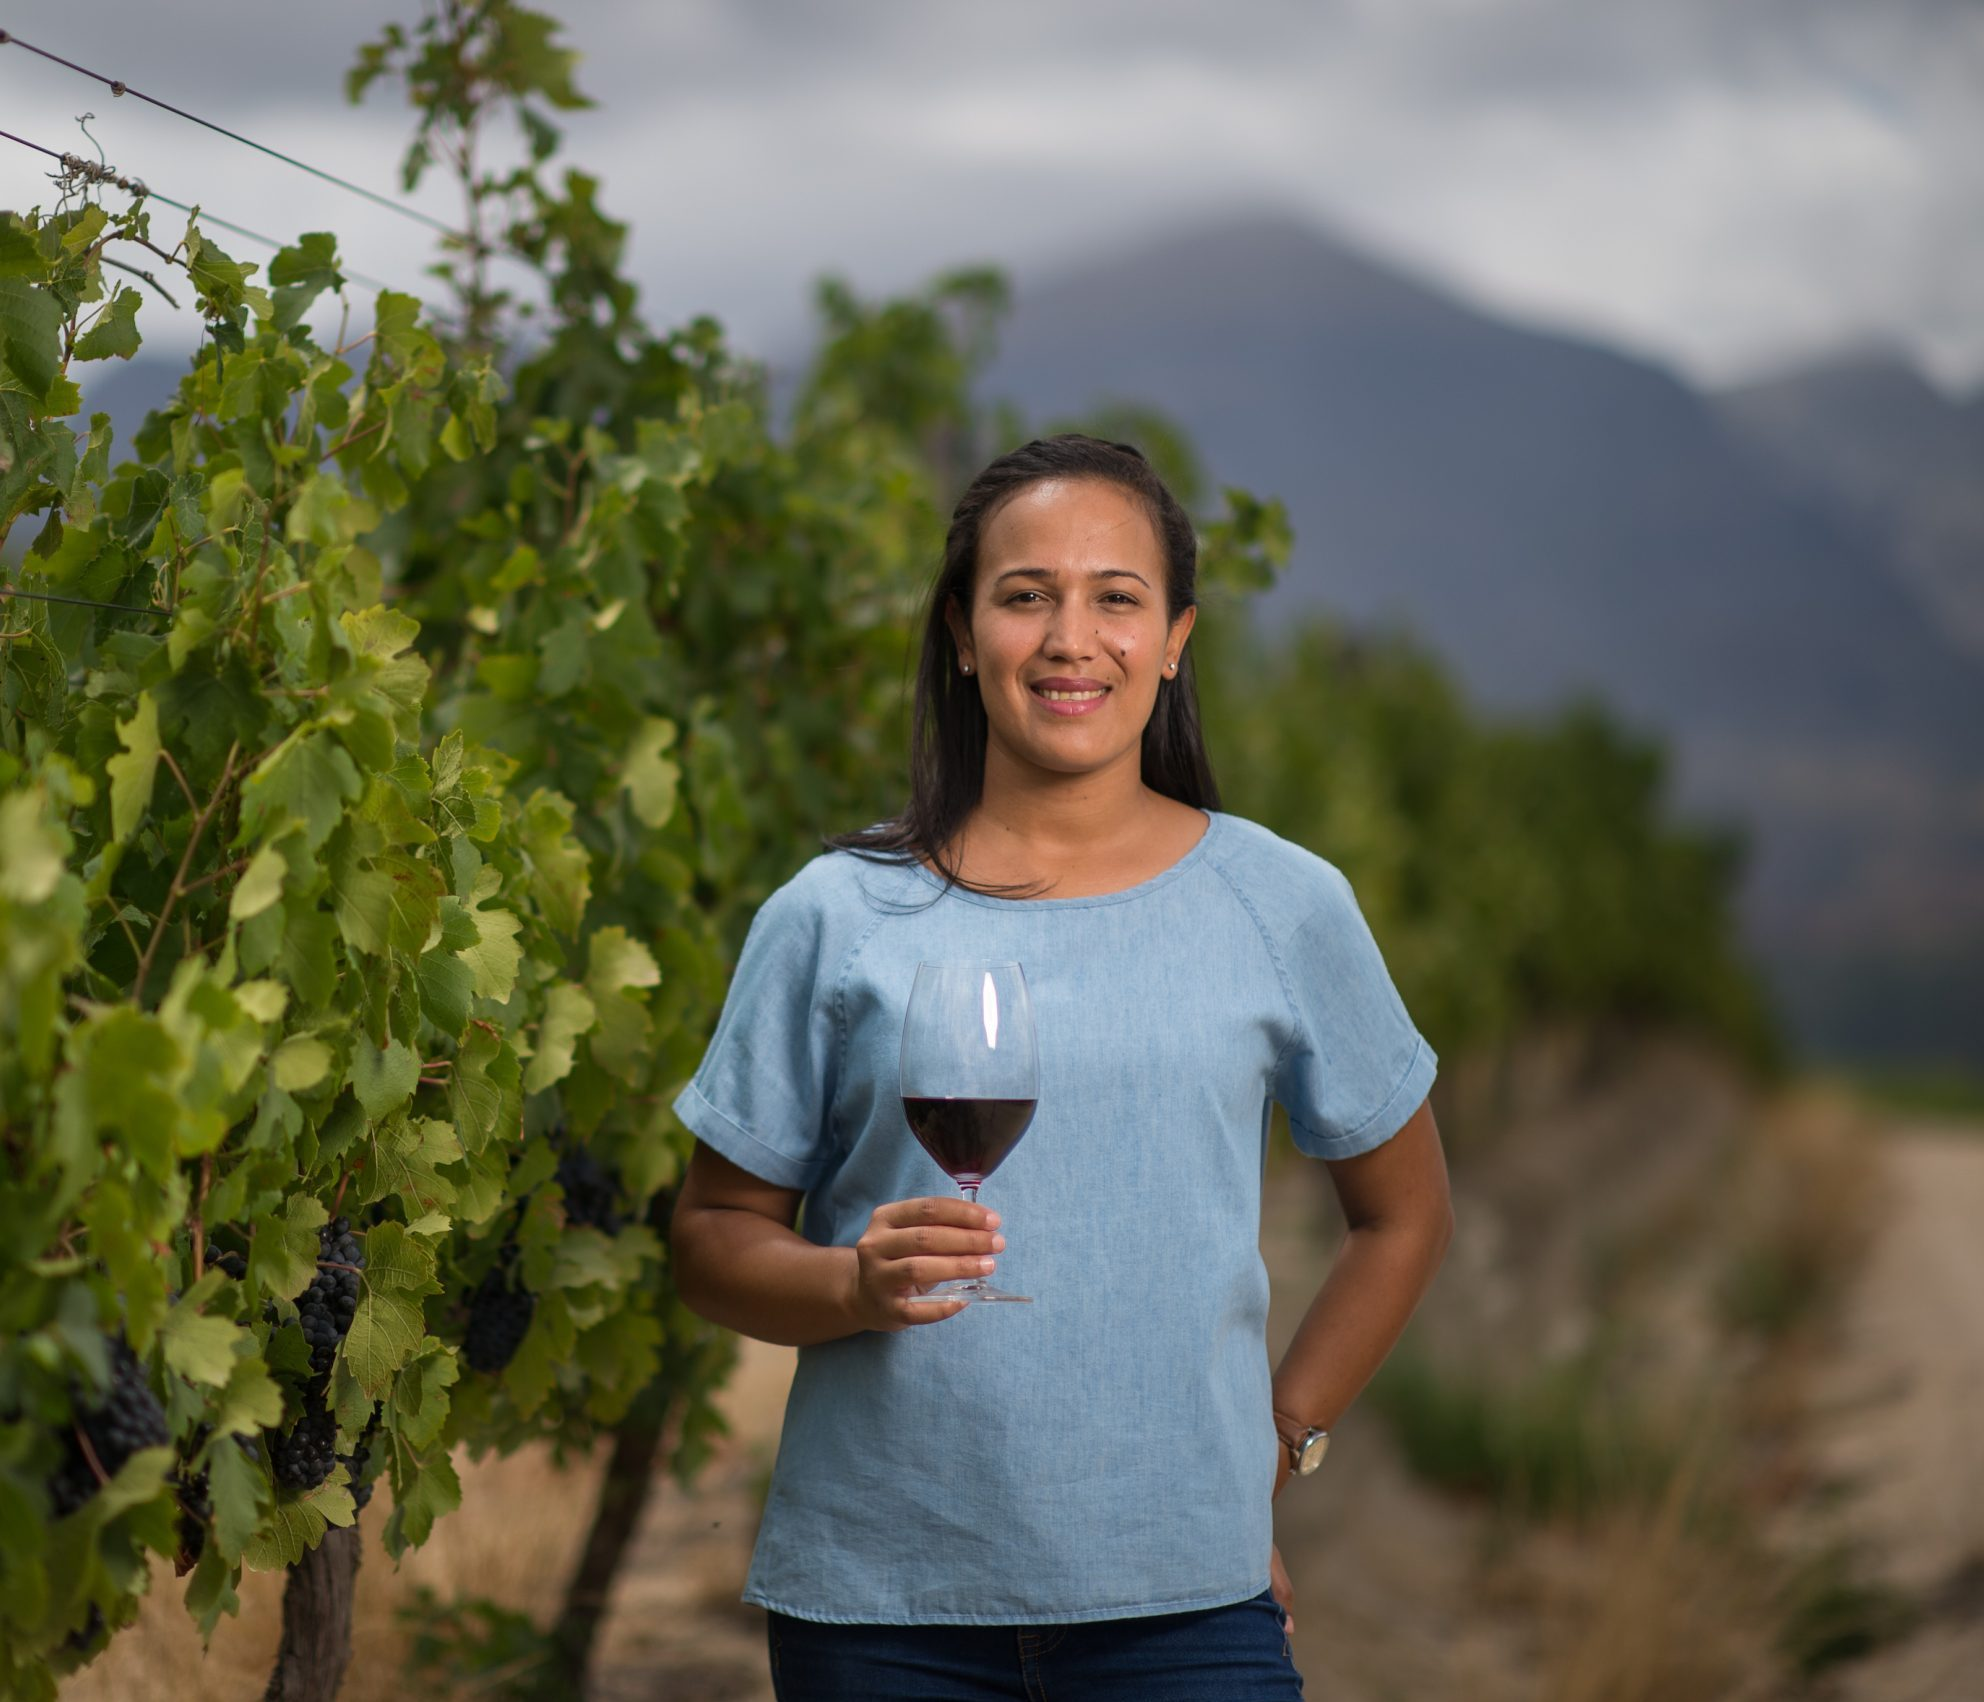 Celebrate International Pinot Noir Day Today By Supporting Female Winemakers photo